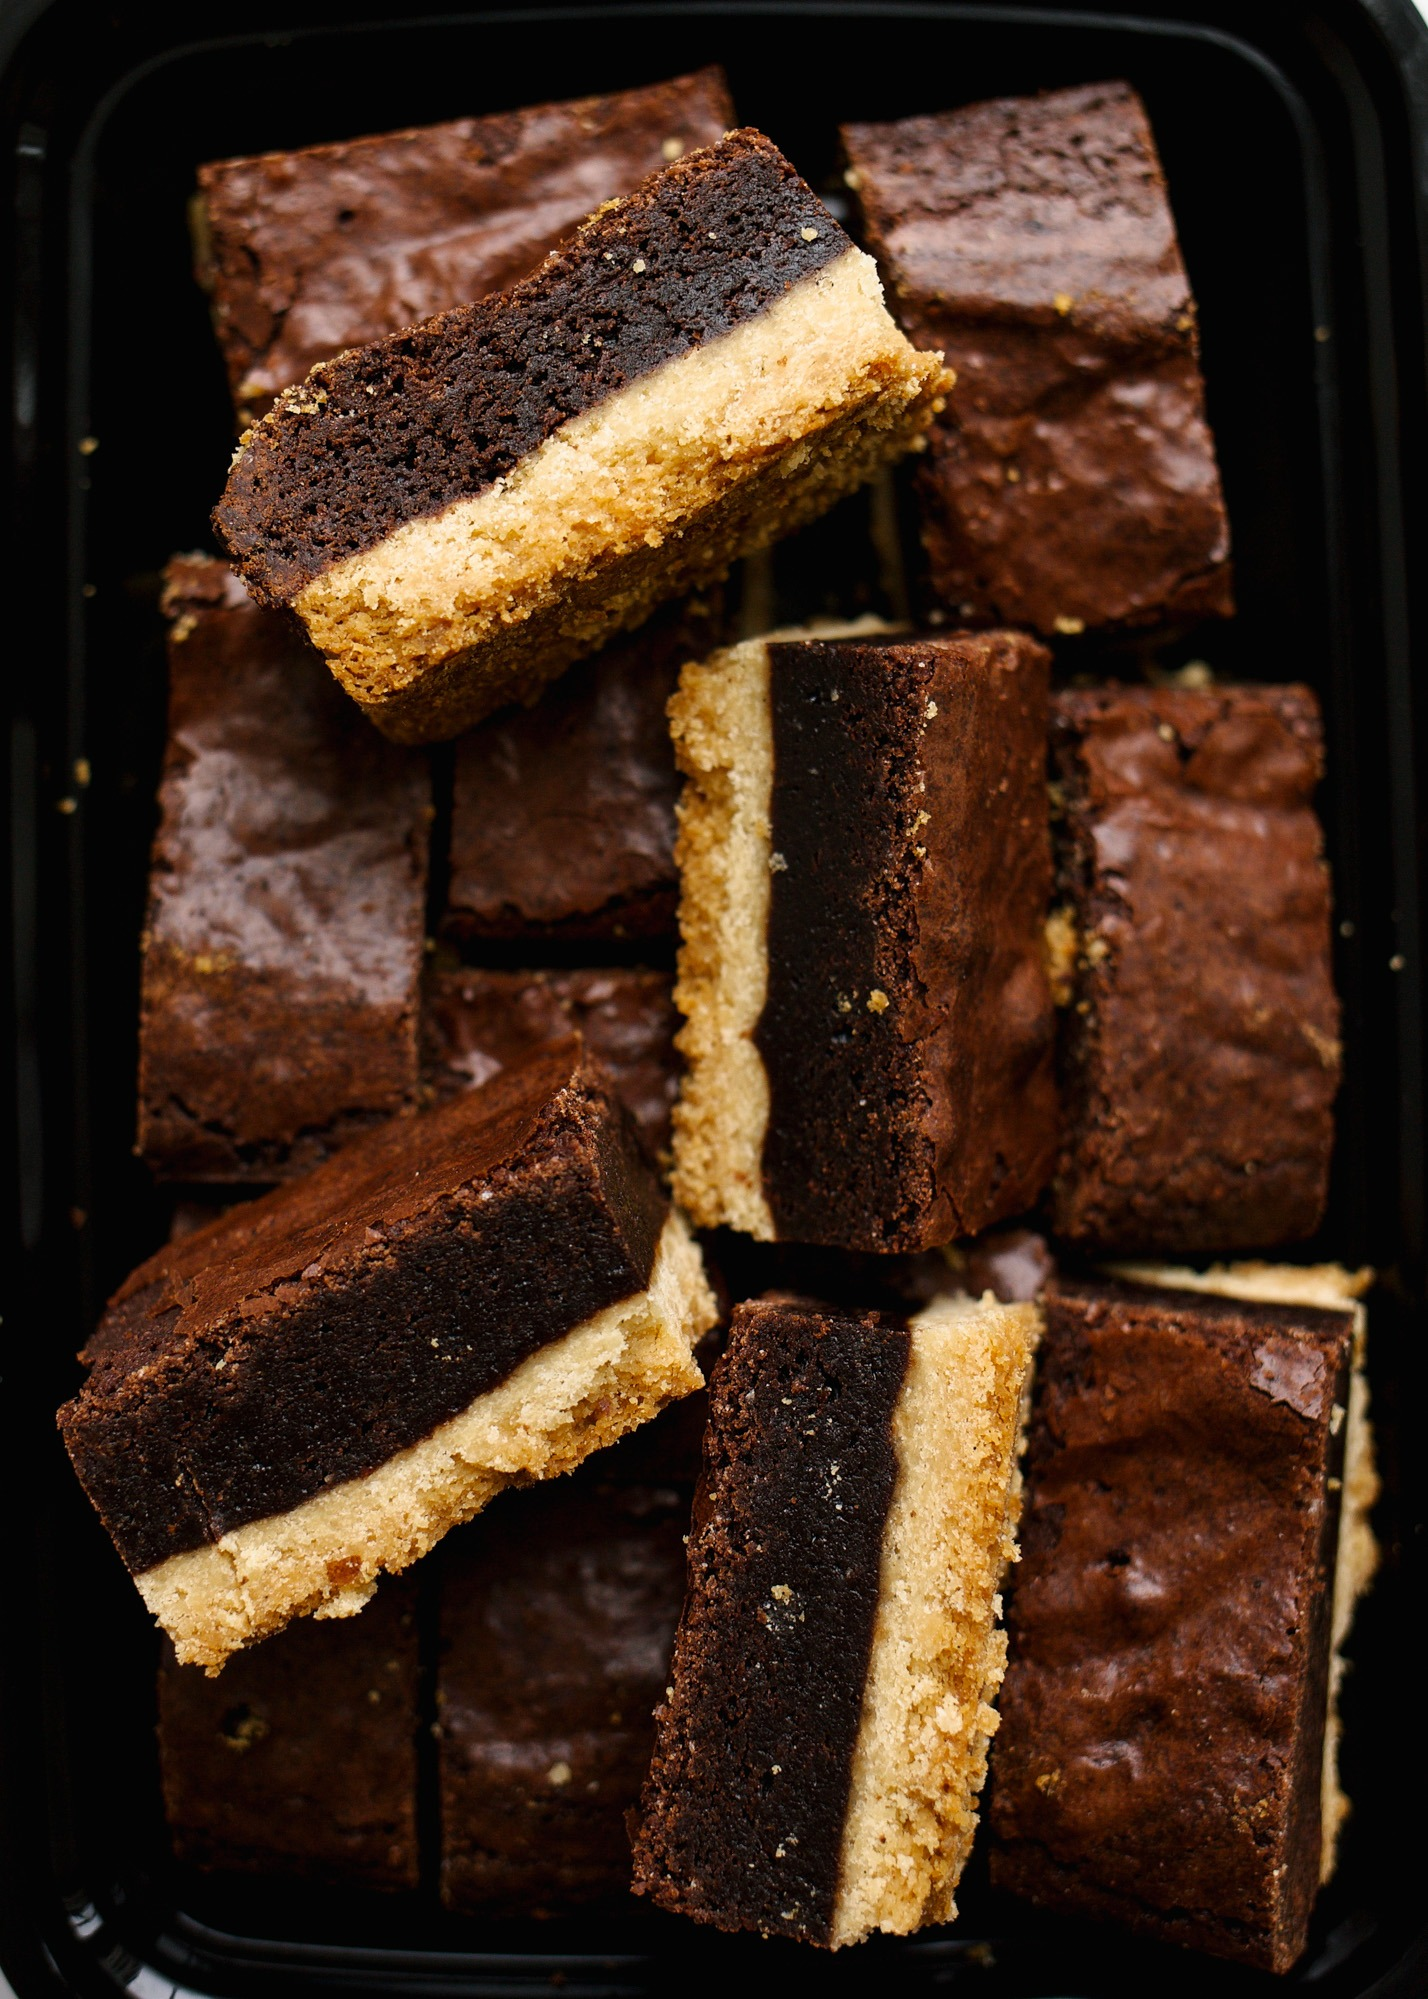 Brownie Shortbread Bars by Wood and Spoon. These are two layer bars made of a buttery vanilla bean shortbread crust and a gooey crackly top brownie. The brownie is rich and fudge without being overly dark, and the crust is crisp and tender. These bars are perfect for the shortbread lovers or for brownie lovers who love a great deal of texture! Learn how simple they are to make on thewoodandspoon.com